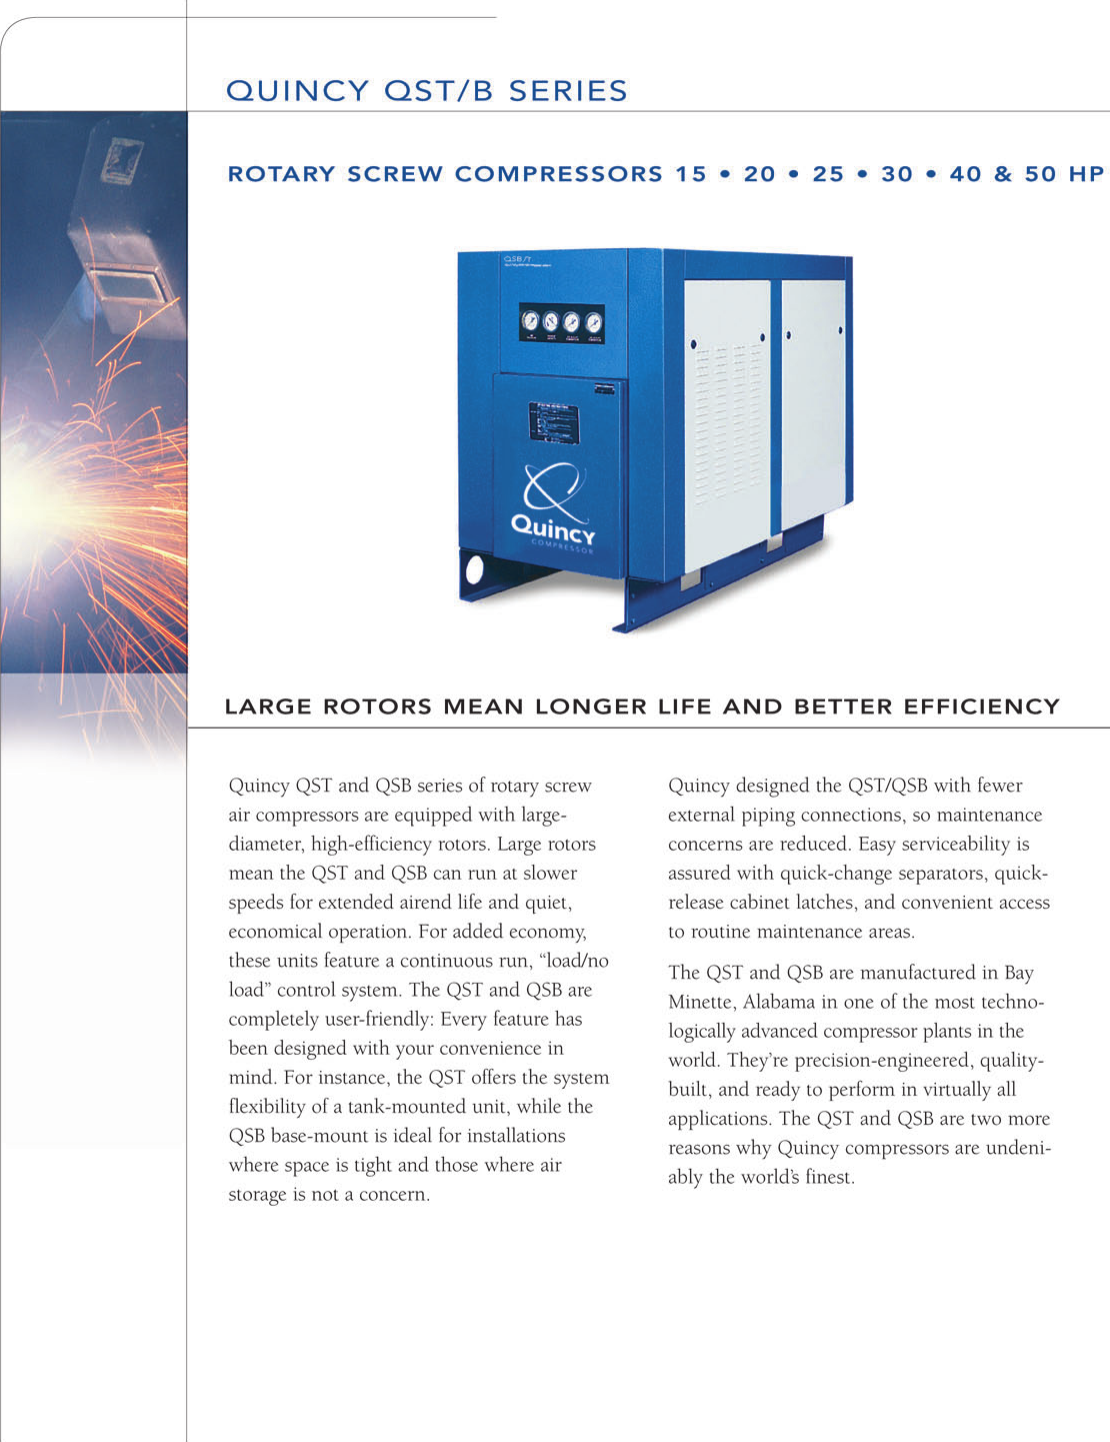 Quincy Sqb Rotary Screw Compressor Brochure Duplex Air Wiring Diagram Page 2 Of 6